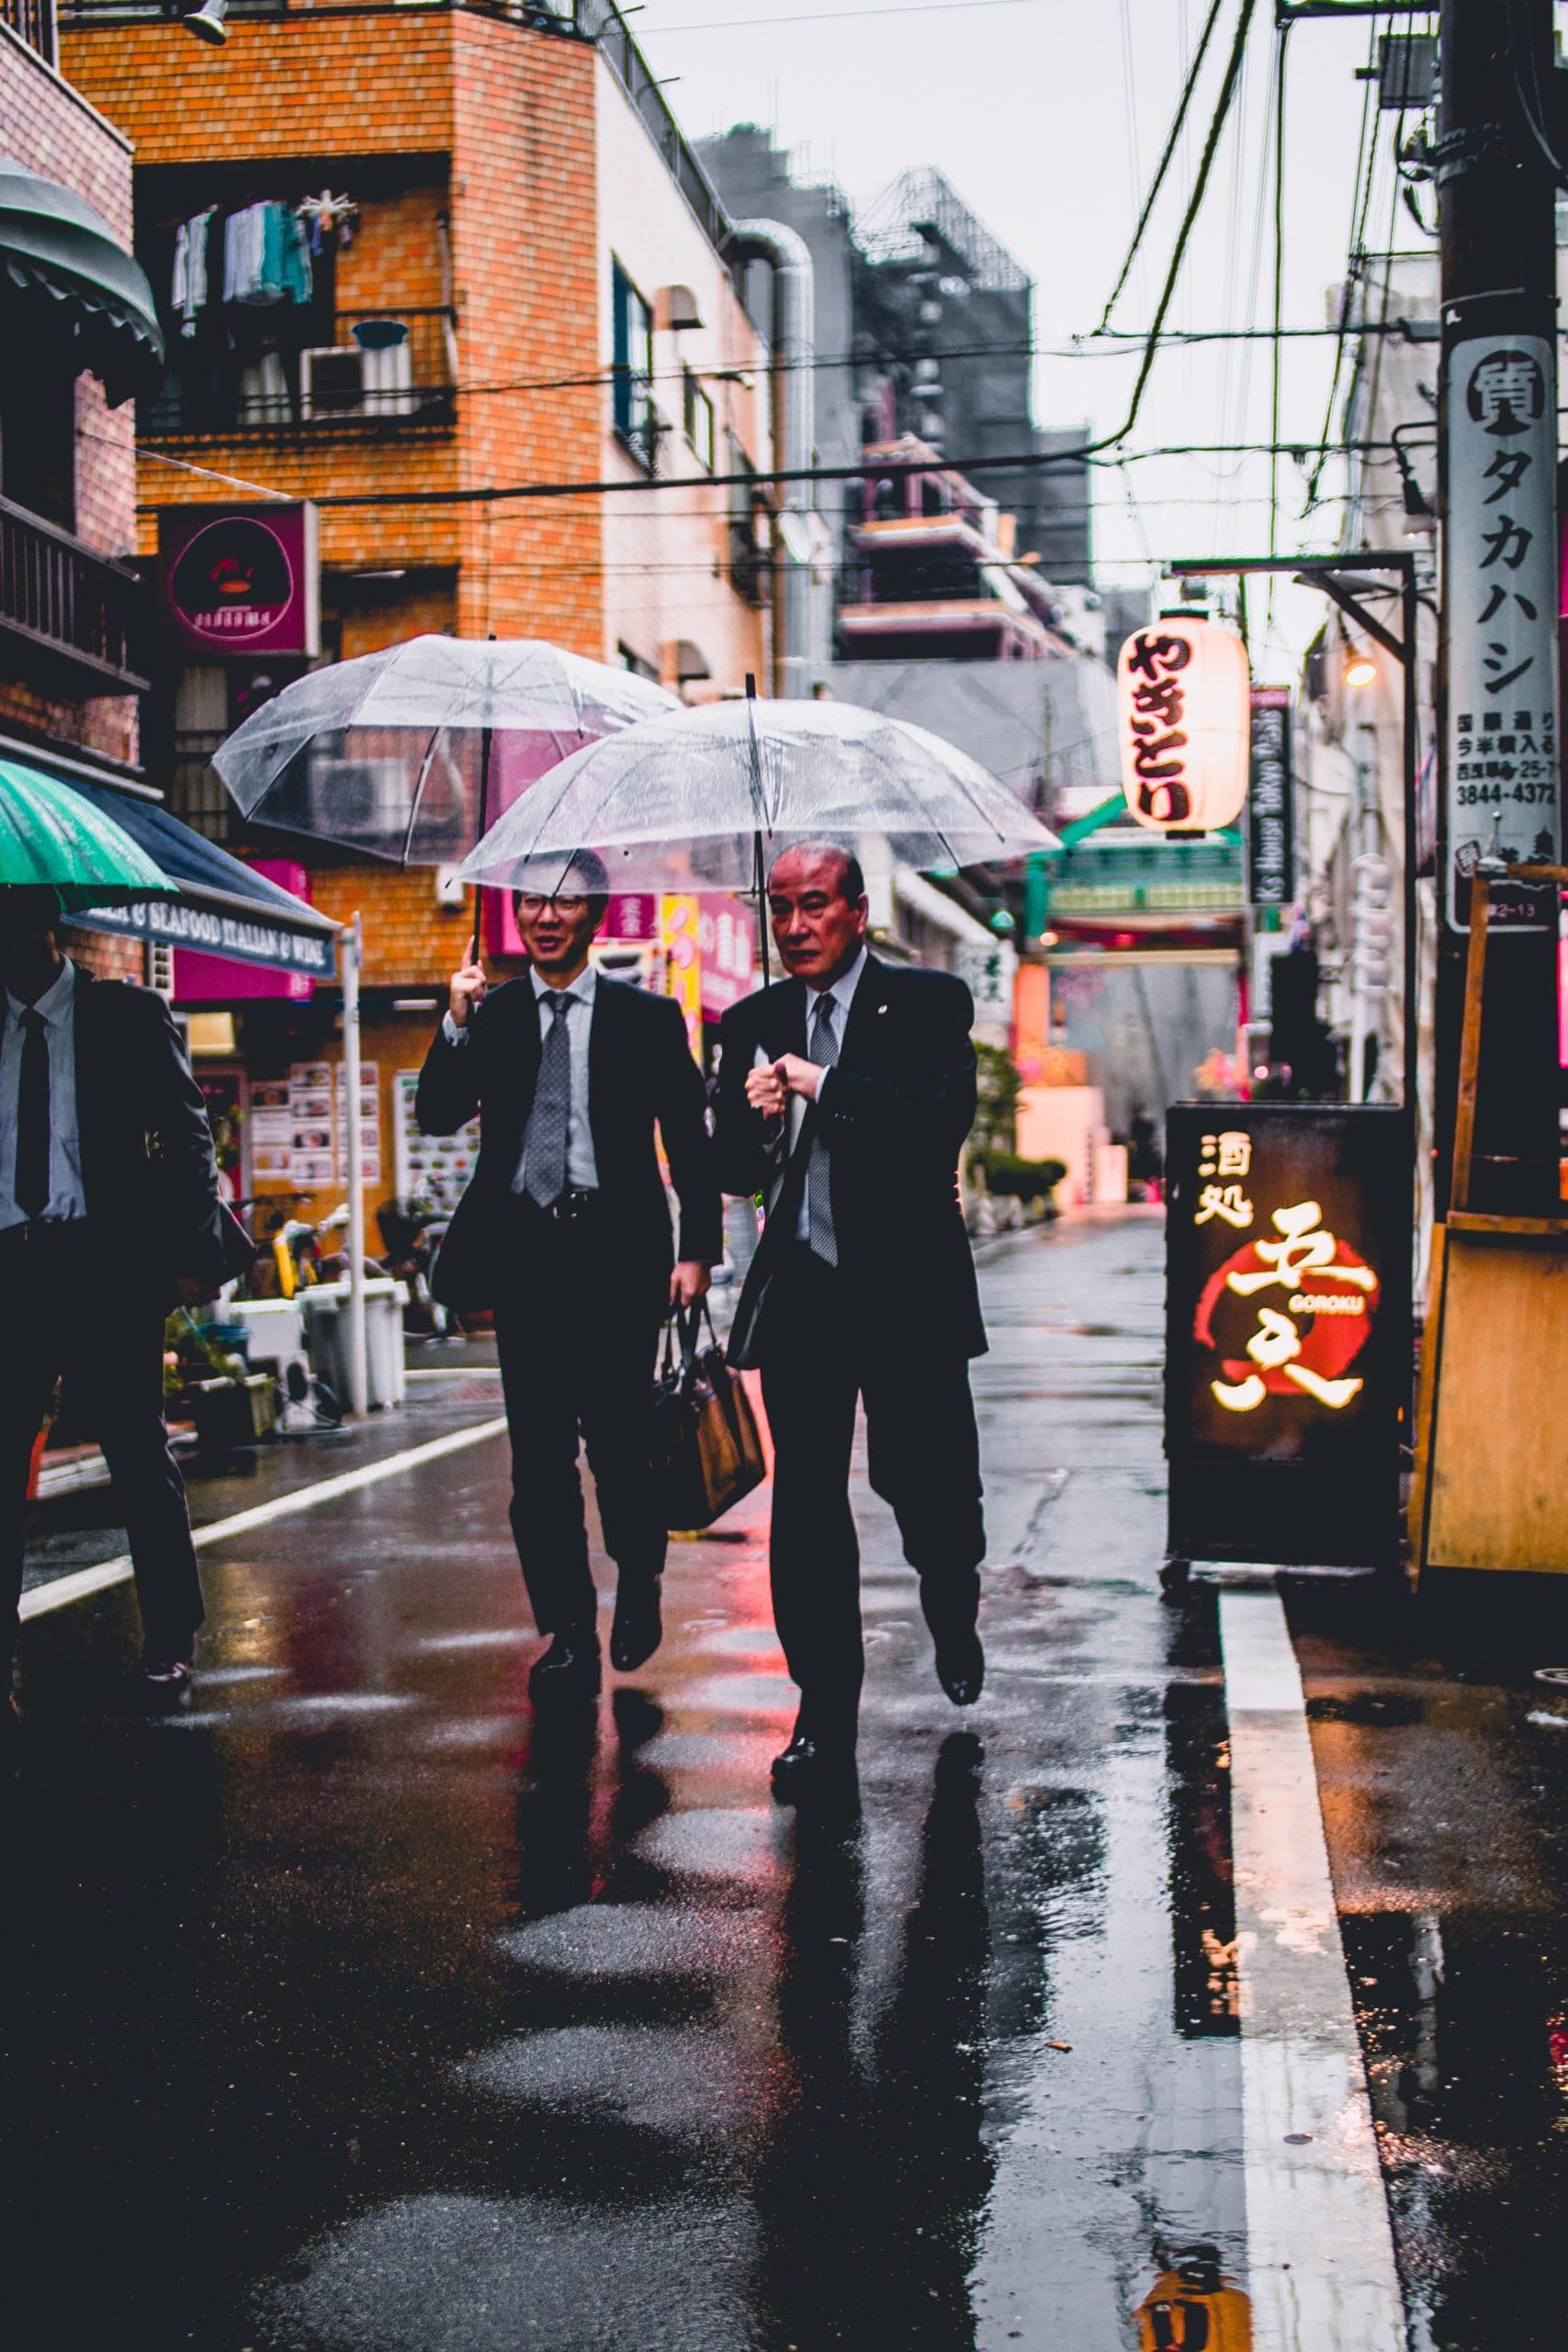 Japanese businessmen